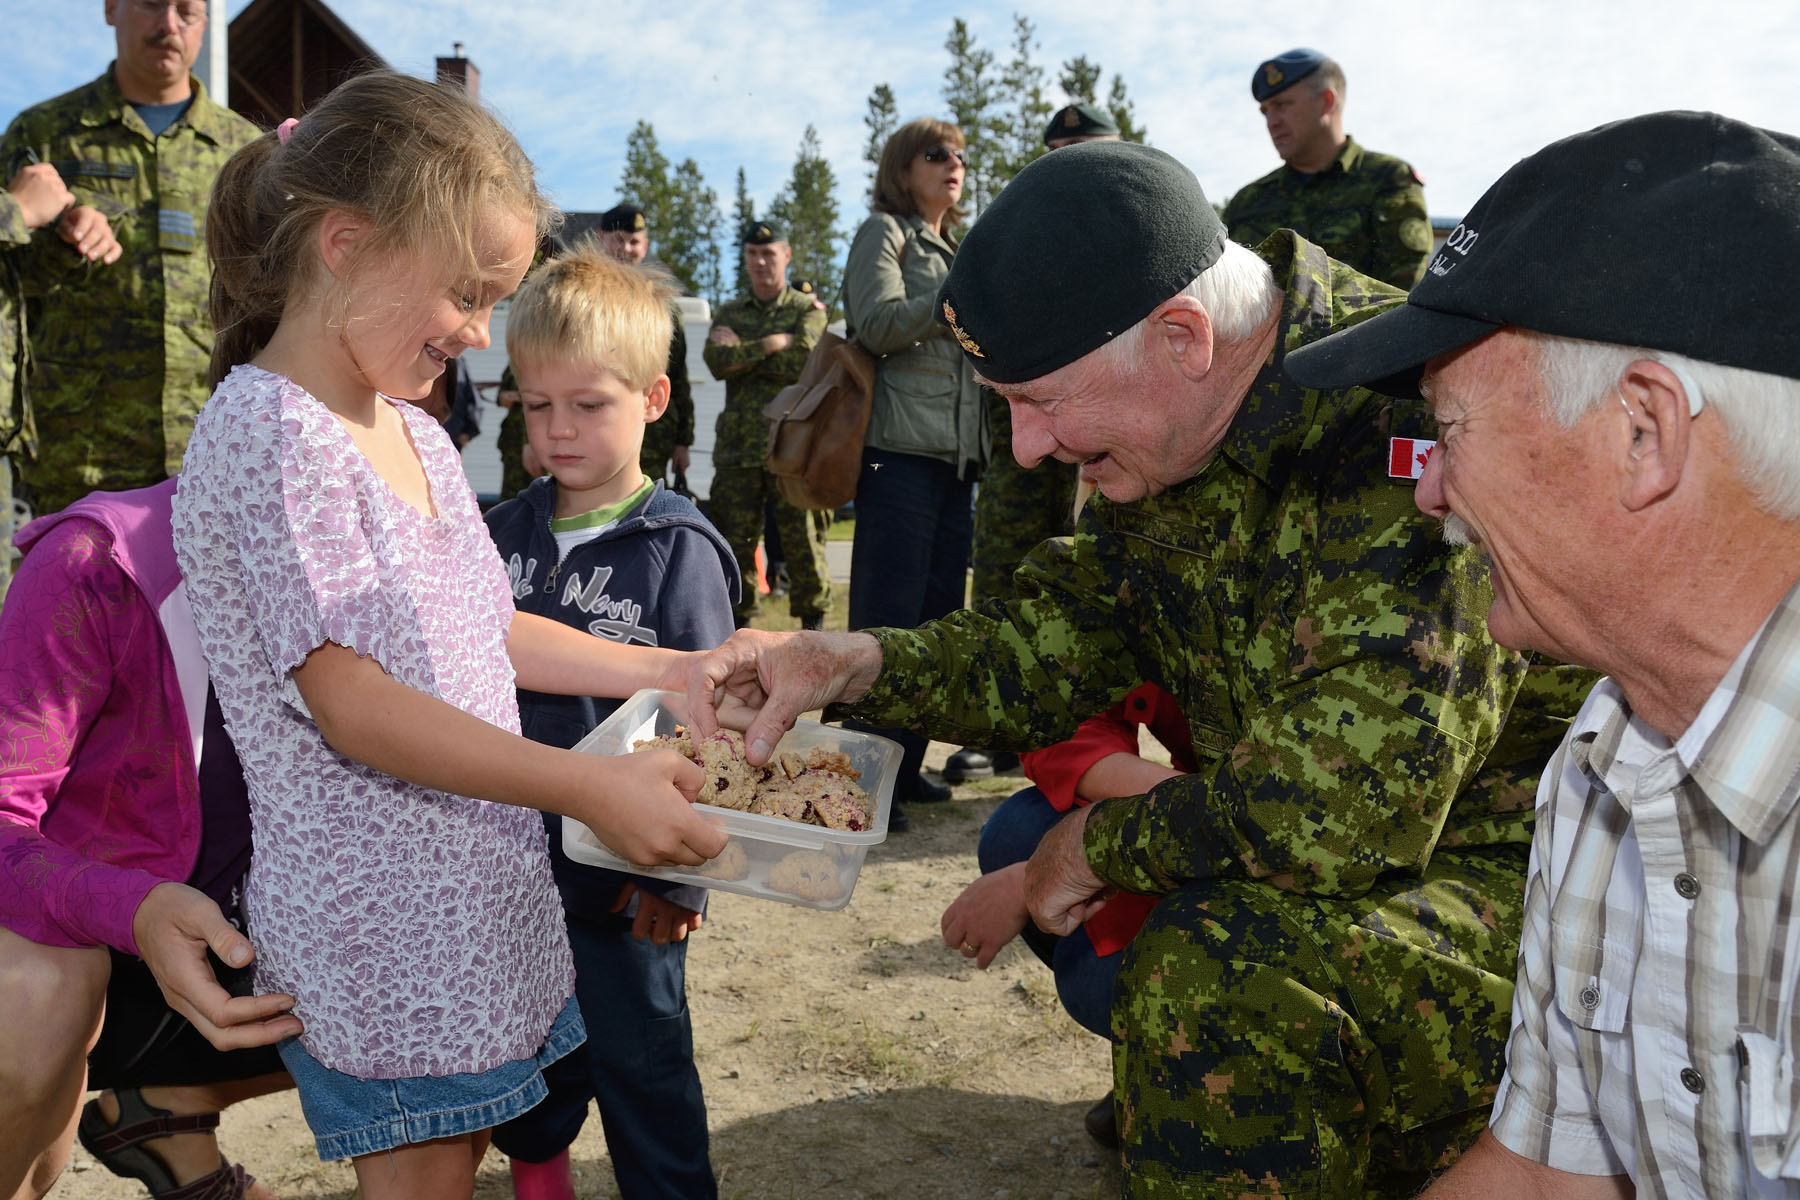 The Governor General enjoyed some homemade cookies during his tour of military operations.